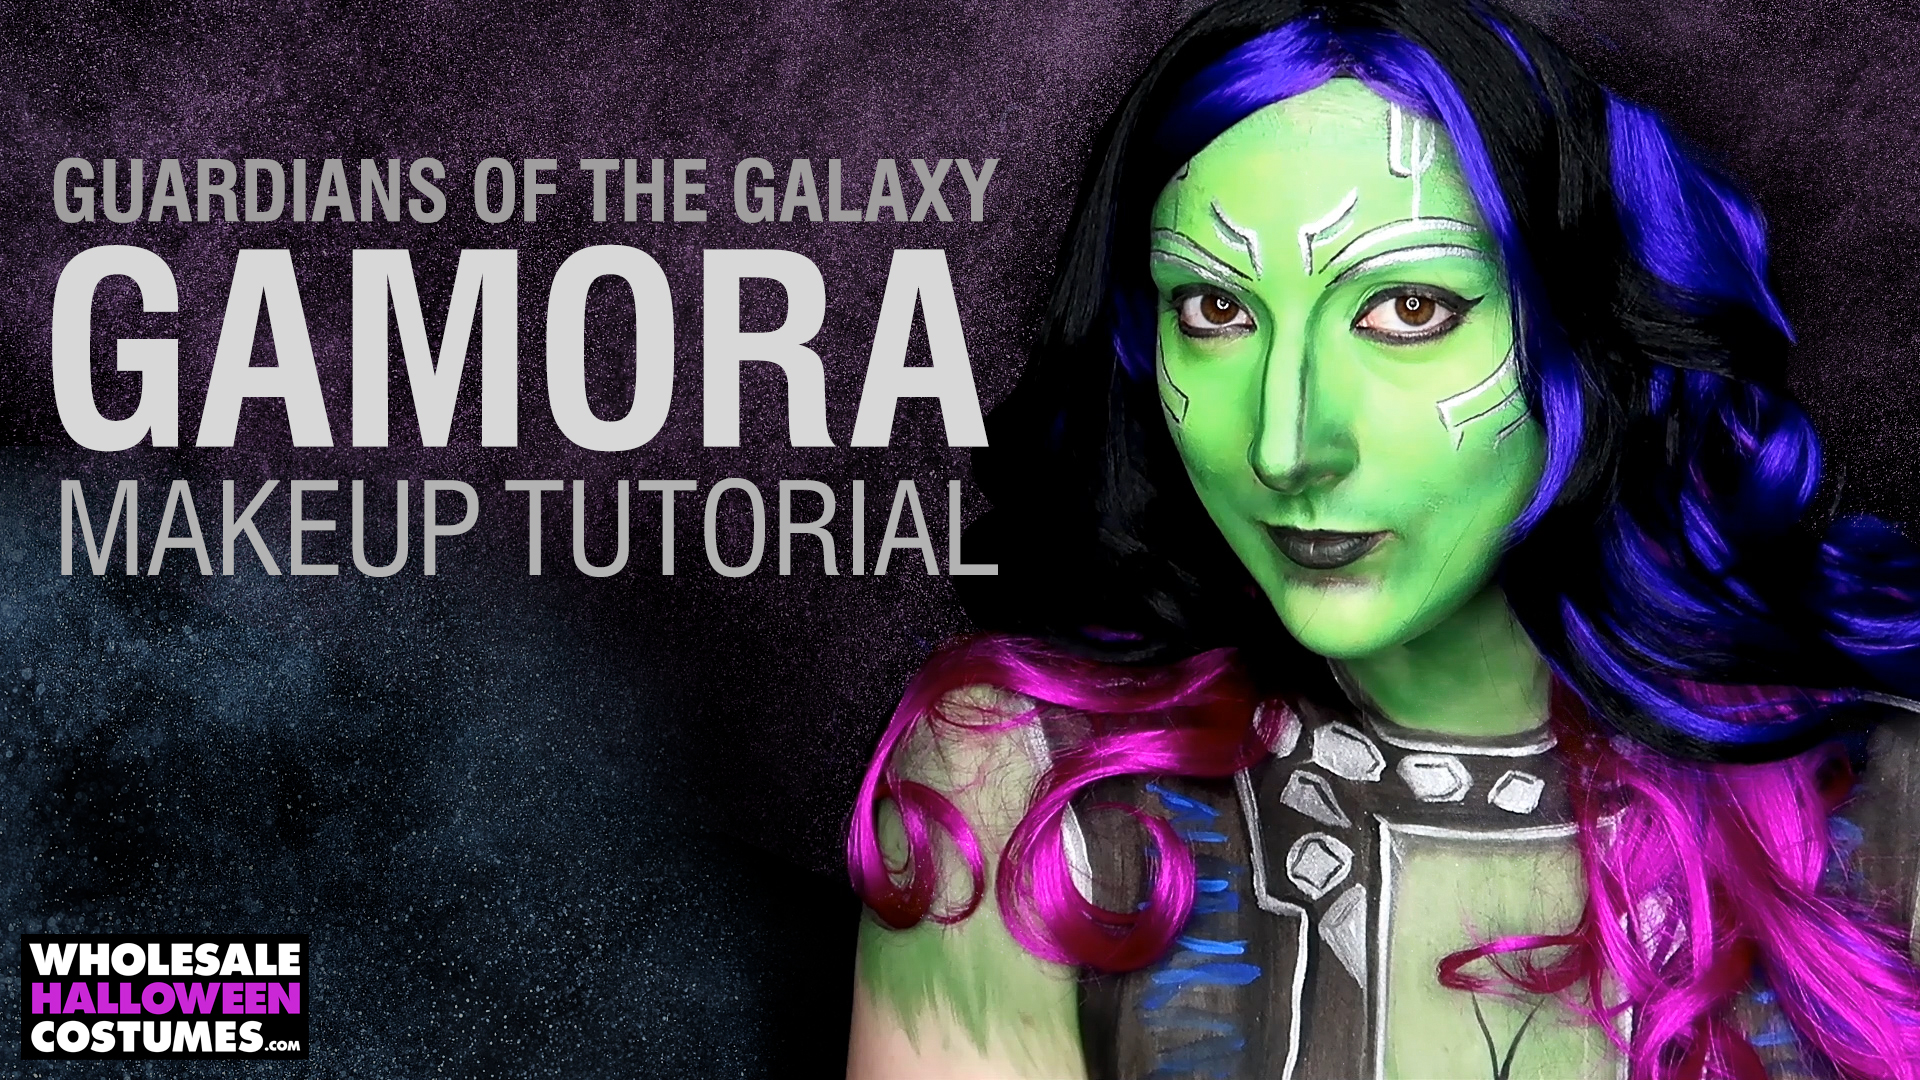 Guardians of the Galaxy - Gamora Makeup Tutorial